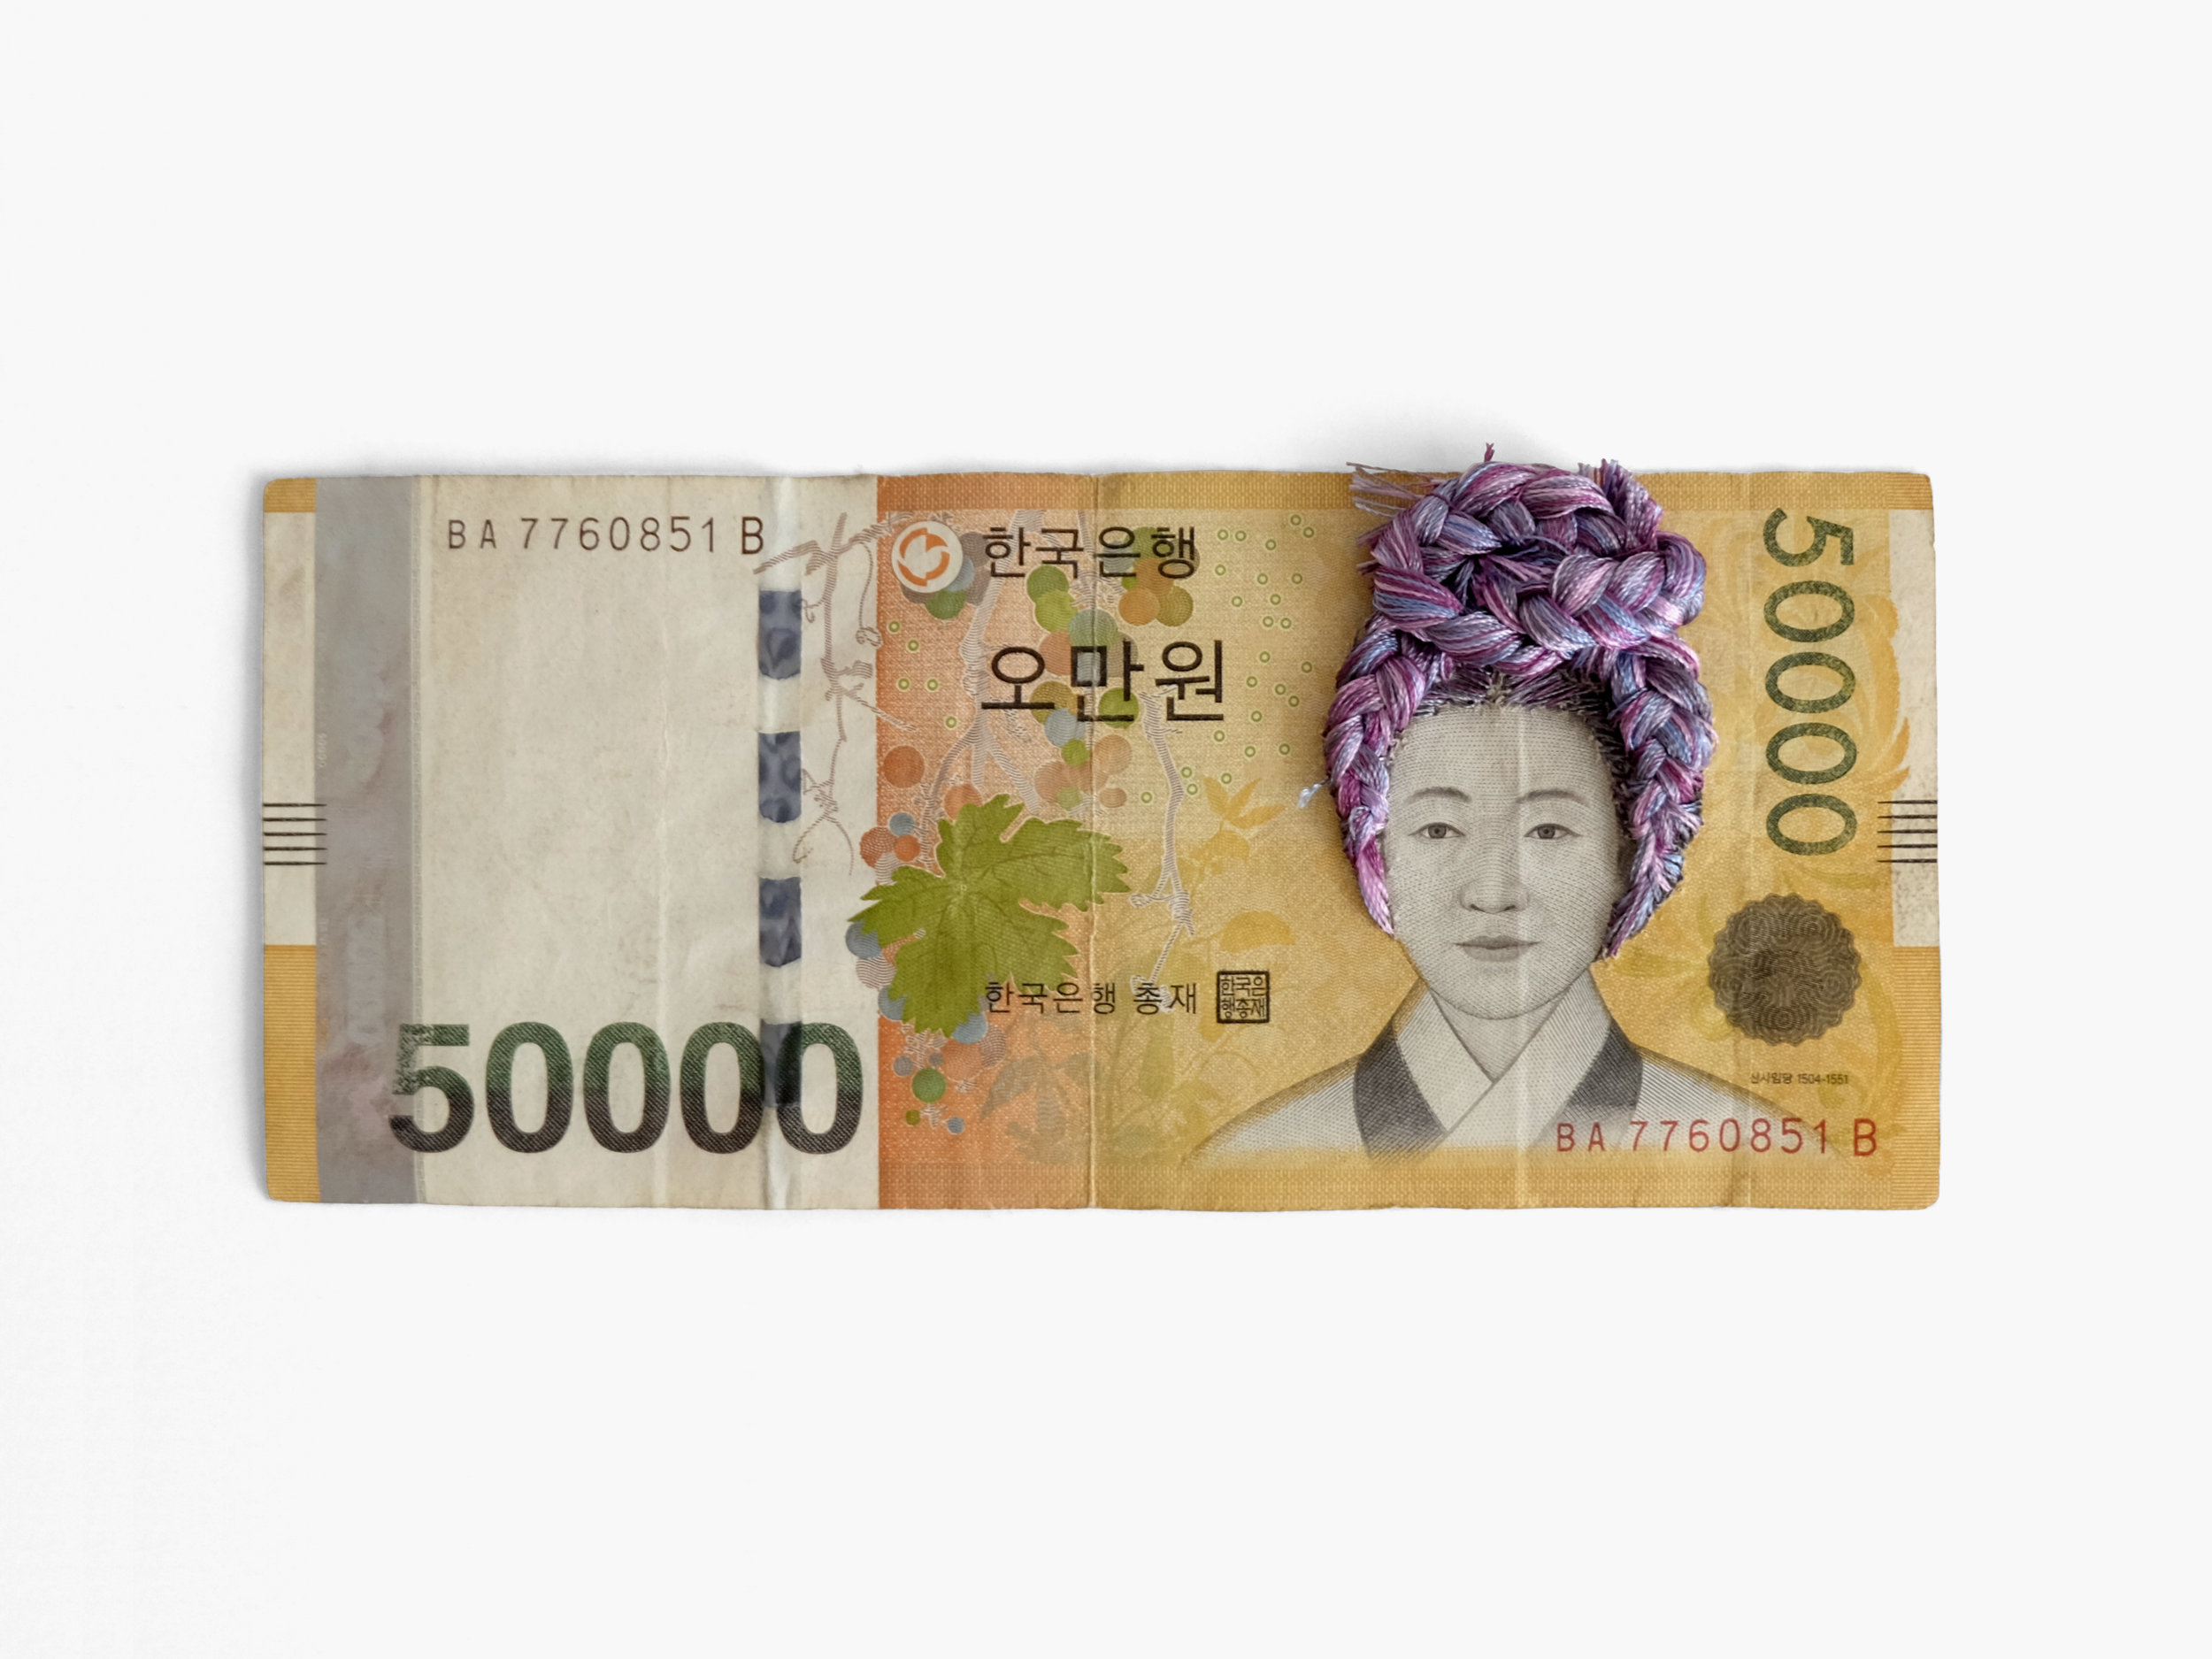 Mimi O Chun  Shin  Korean banknote, embroidery floss 6 × 2.675 in 2017